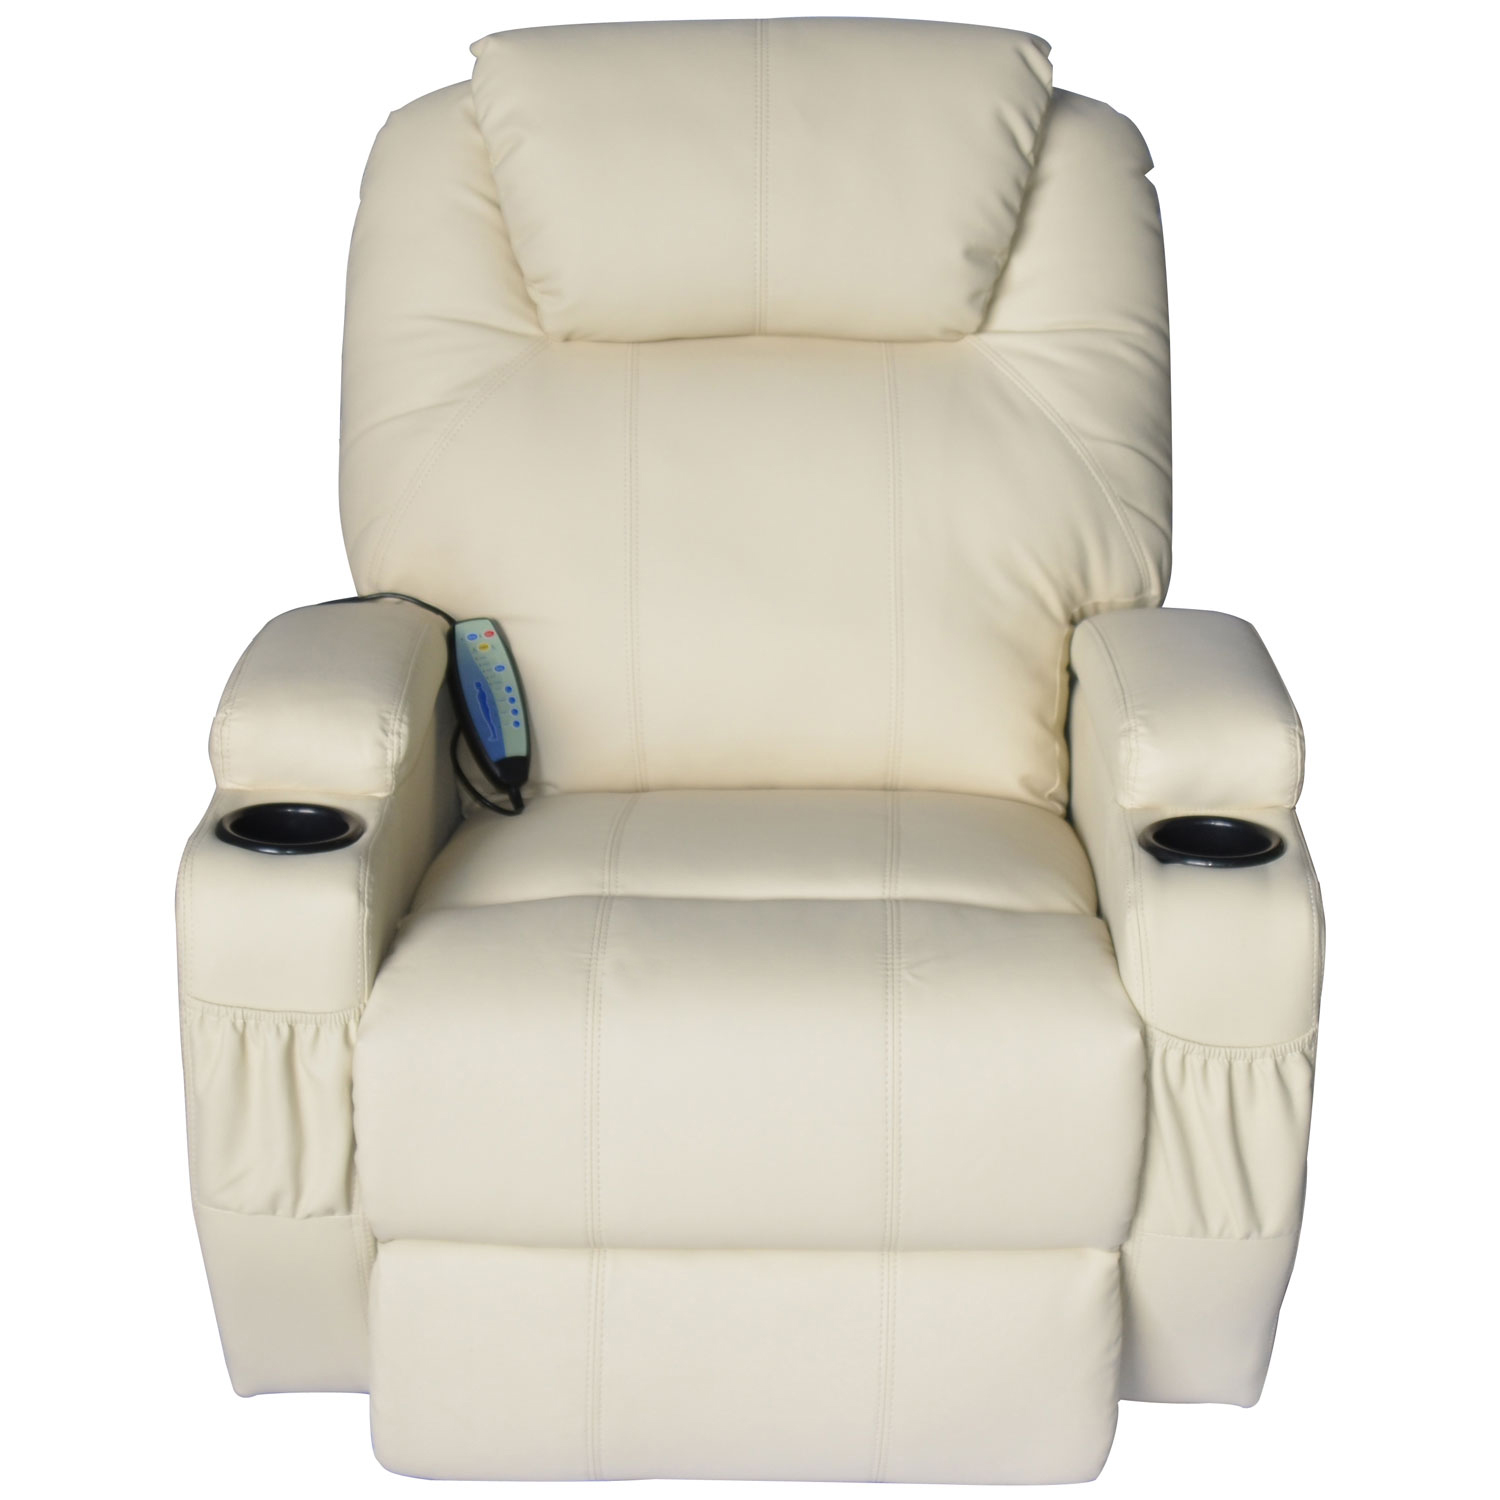 HomCom Deluxe Heated Vibrating PU Leather Massage Recliner Chair   Cream    Walmart.com